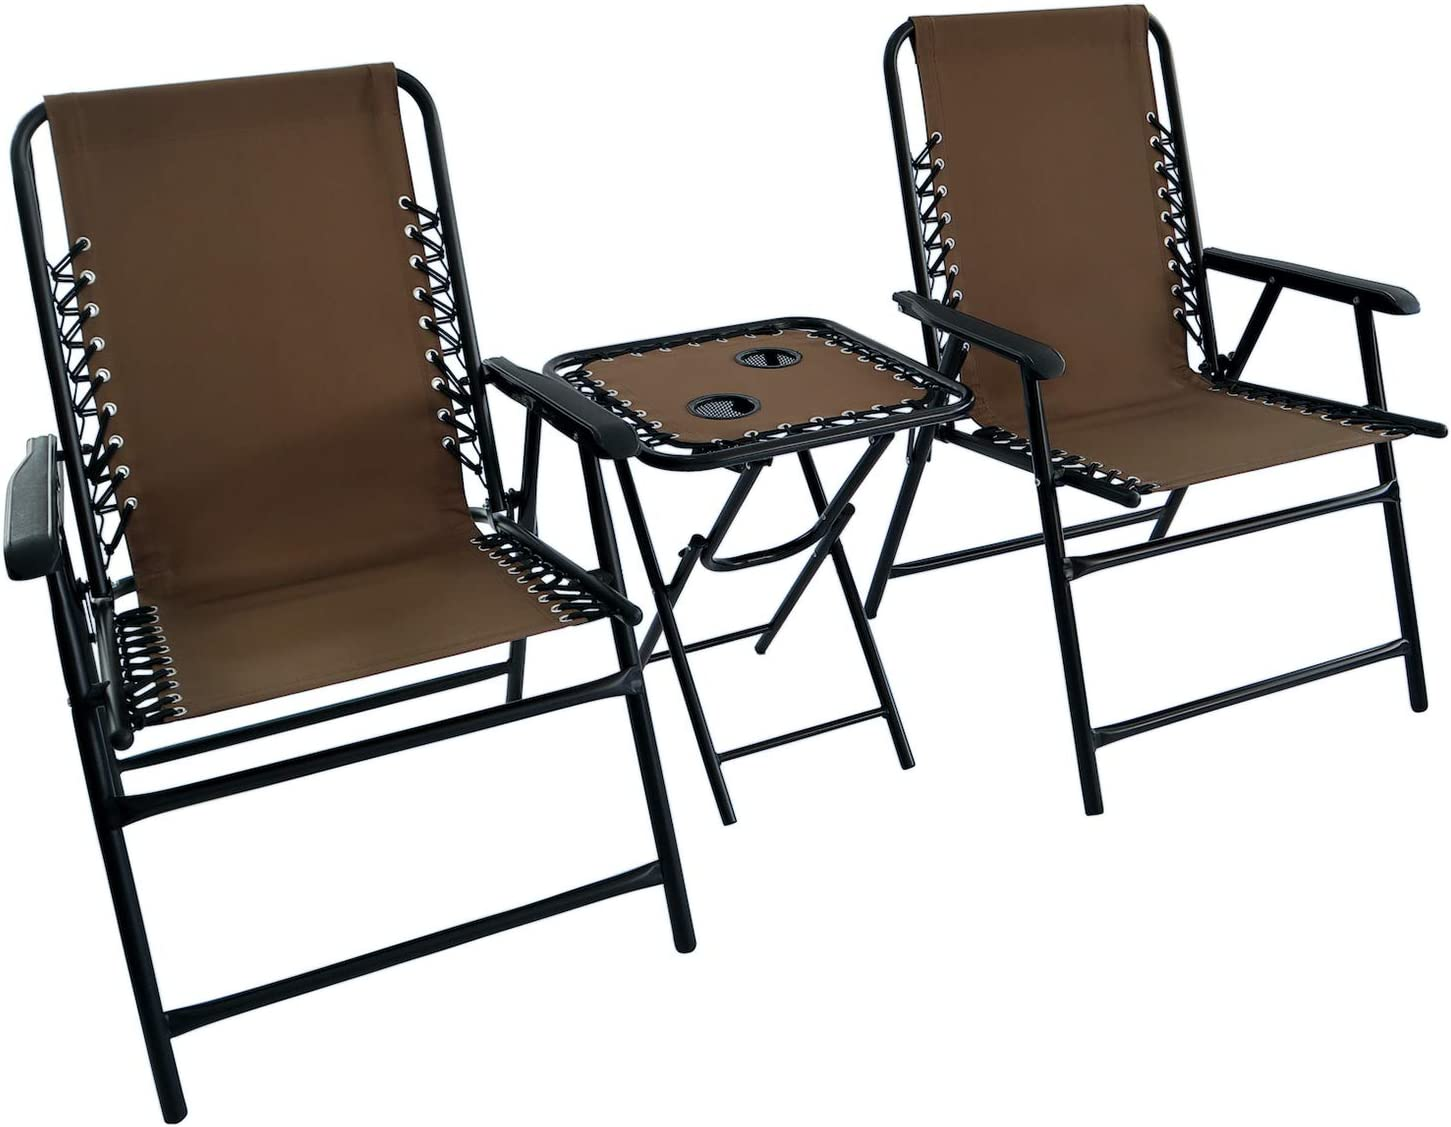 JOYURE Set of Popular overseas 2 Folding Max 66% OFF Patio Dining Portable Bungee Chairs Chai